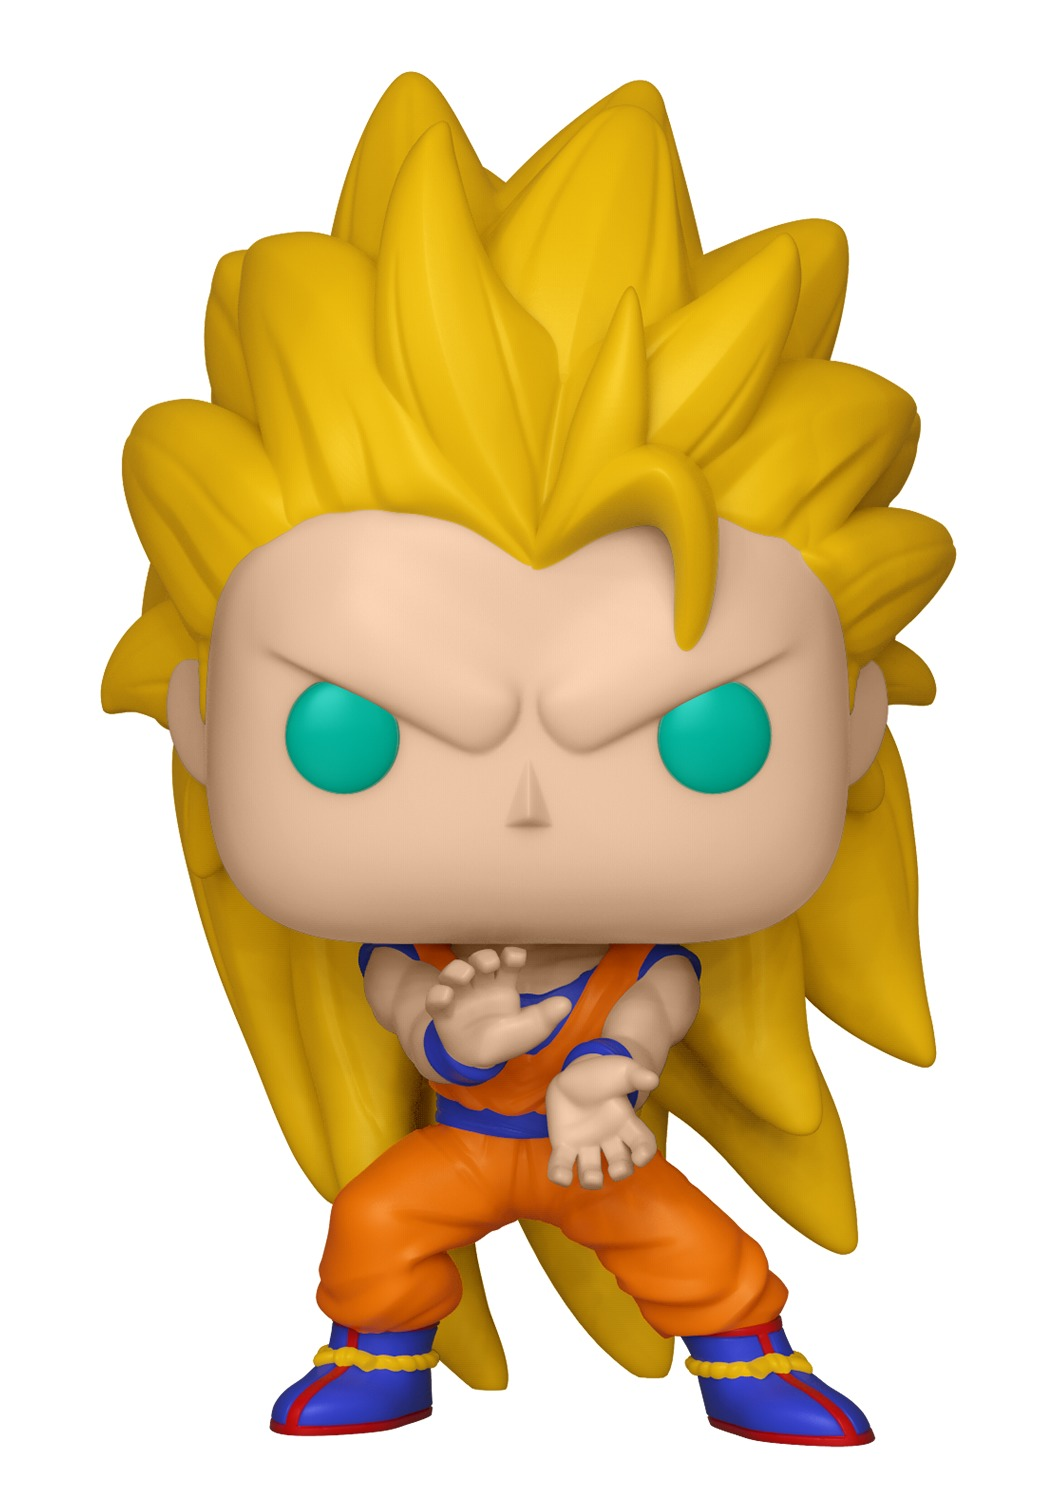 Dragon Ball Z – Goku (SS3) Pop! Vinyl Figure image